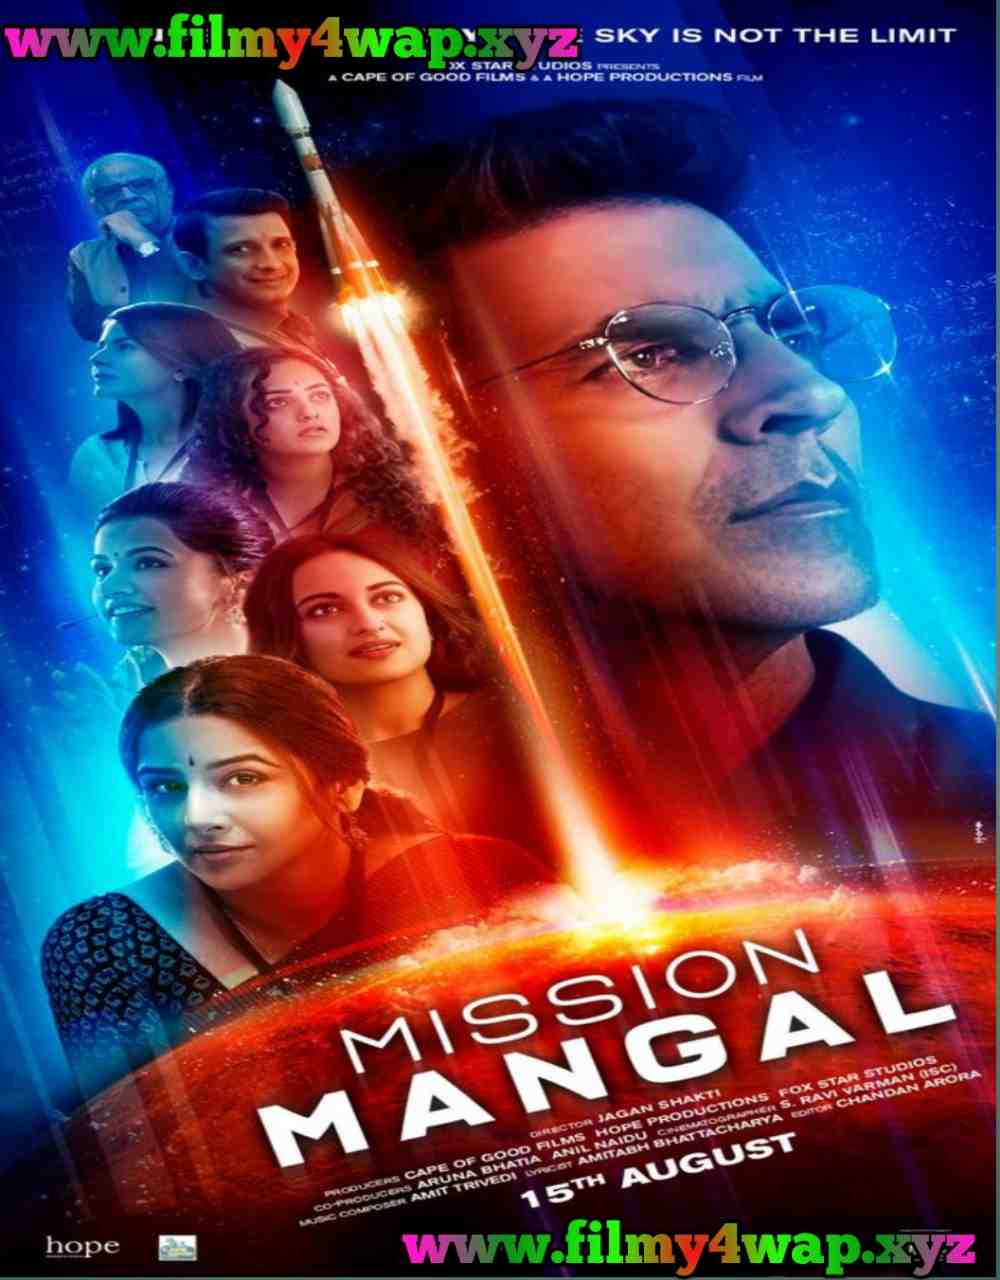 mission-mangal-2019-bollywood-full-movie-400mb-700mb